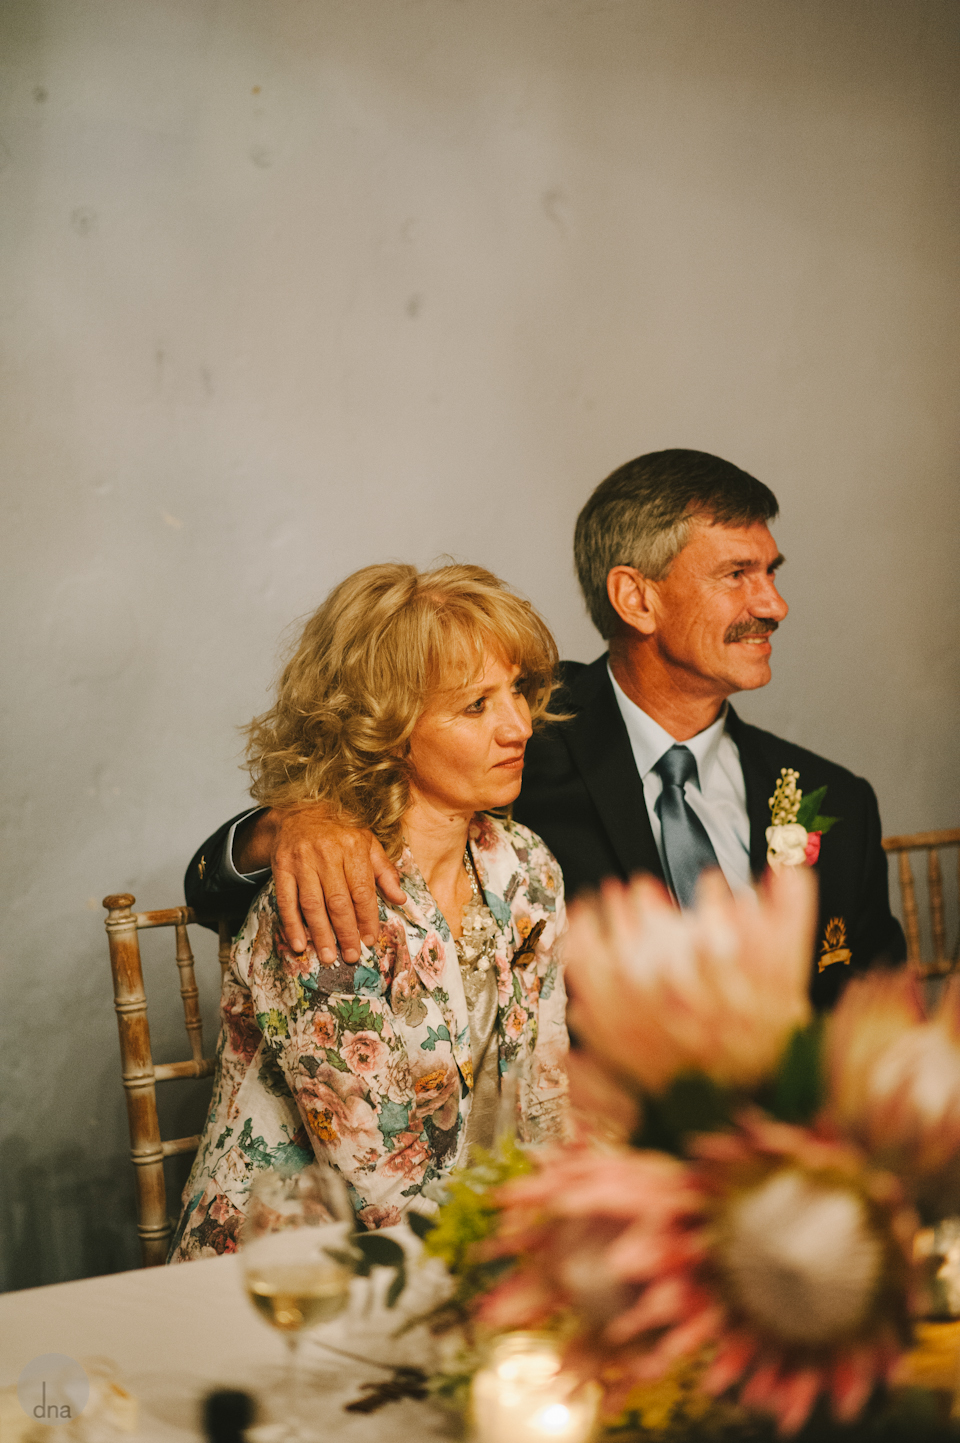 Amy and Marnus wedding Hawksmore House Stellenbosch South Africa shot by dna photographers_-1076.jpg